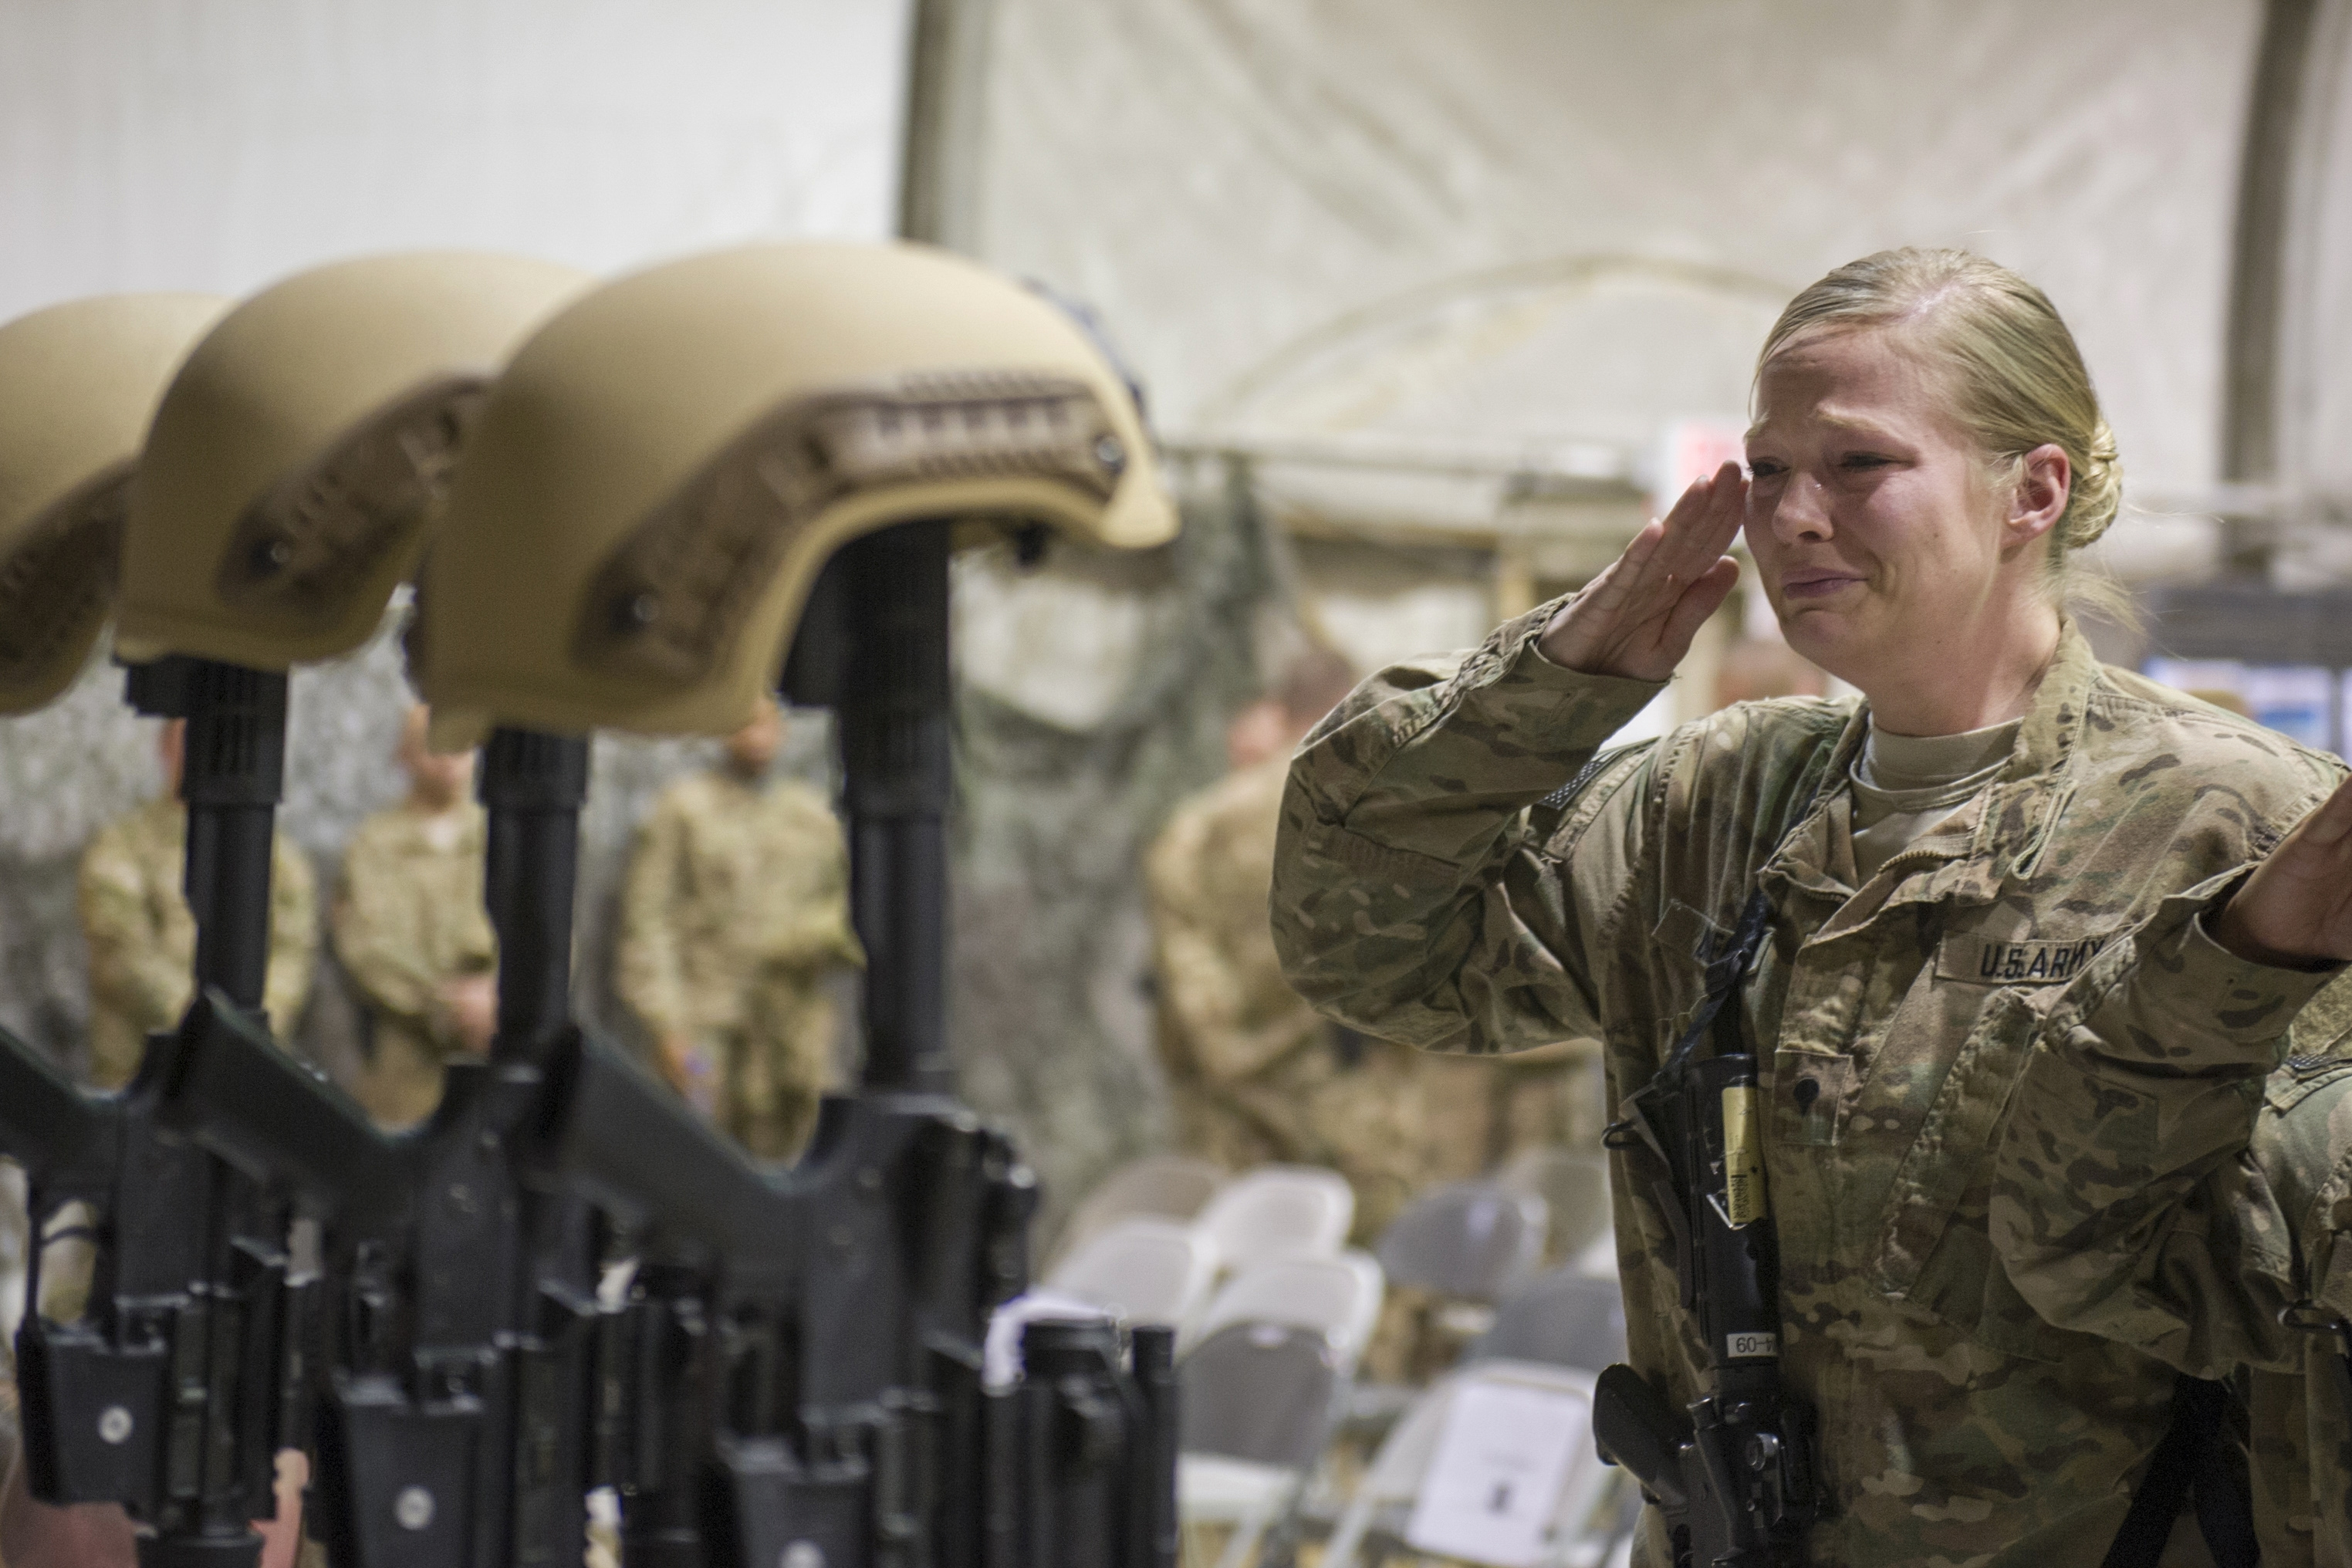 A U.S. Army soldier salutes during a memorial ceremony at Bagram Airfield in Afghanistan for the six Air Force members killed in a suicide attack Monday. (New York Times)